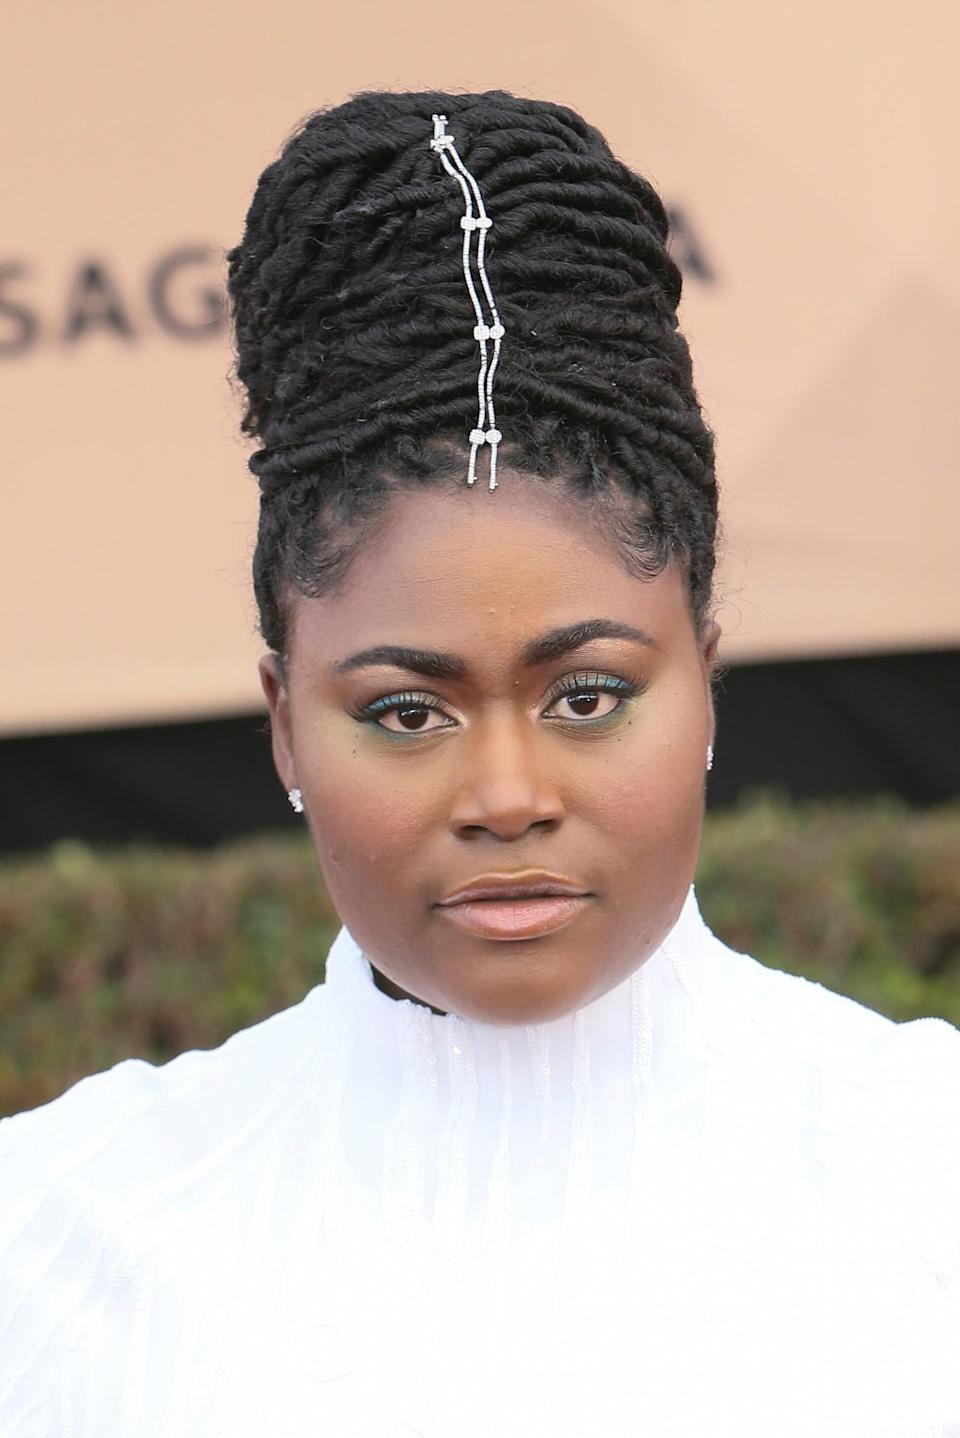 <p>All eyes were on the 'Orange Is The New Black' star as she opted for a quirky up-do, complete with a hair charm. Some rather striking green eye makeup completed the look. [Photo: Getty] </p>